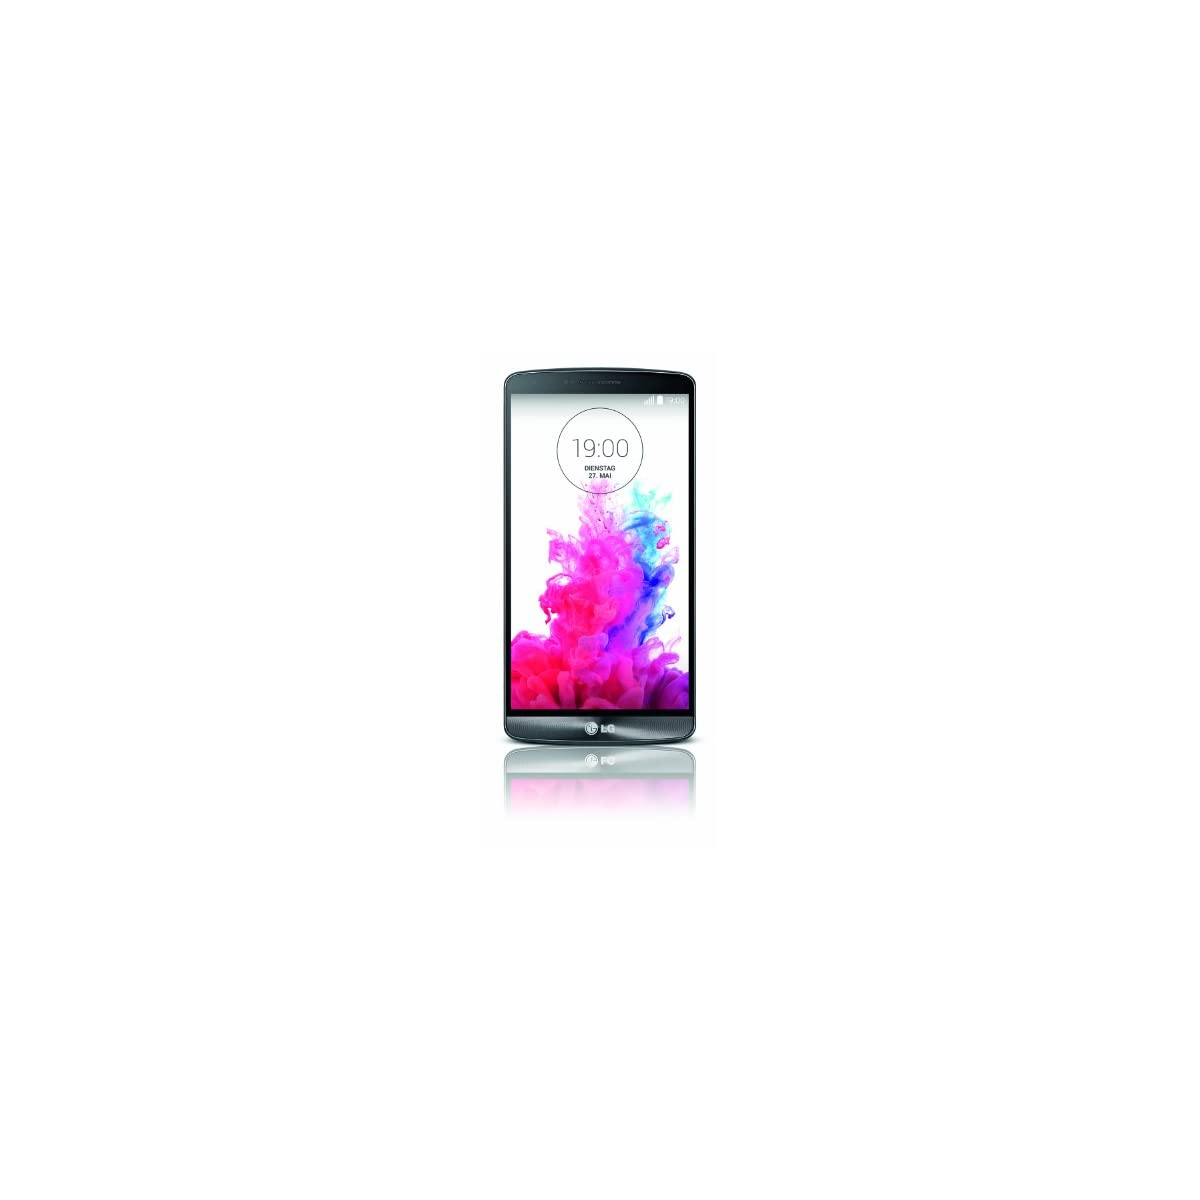 LG G3 Smartphone (14 cm (5,5 Zoll) Quad-HD-IPS-Display, 2.5-GHz-Quad-Core-Prozessor, 13-Megapixel-Kamera, 16 GB Speicher, Android 4.4)